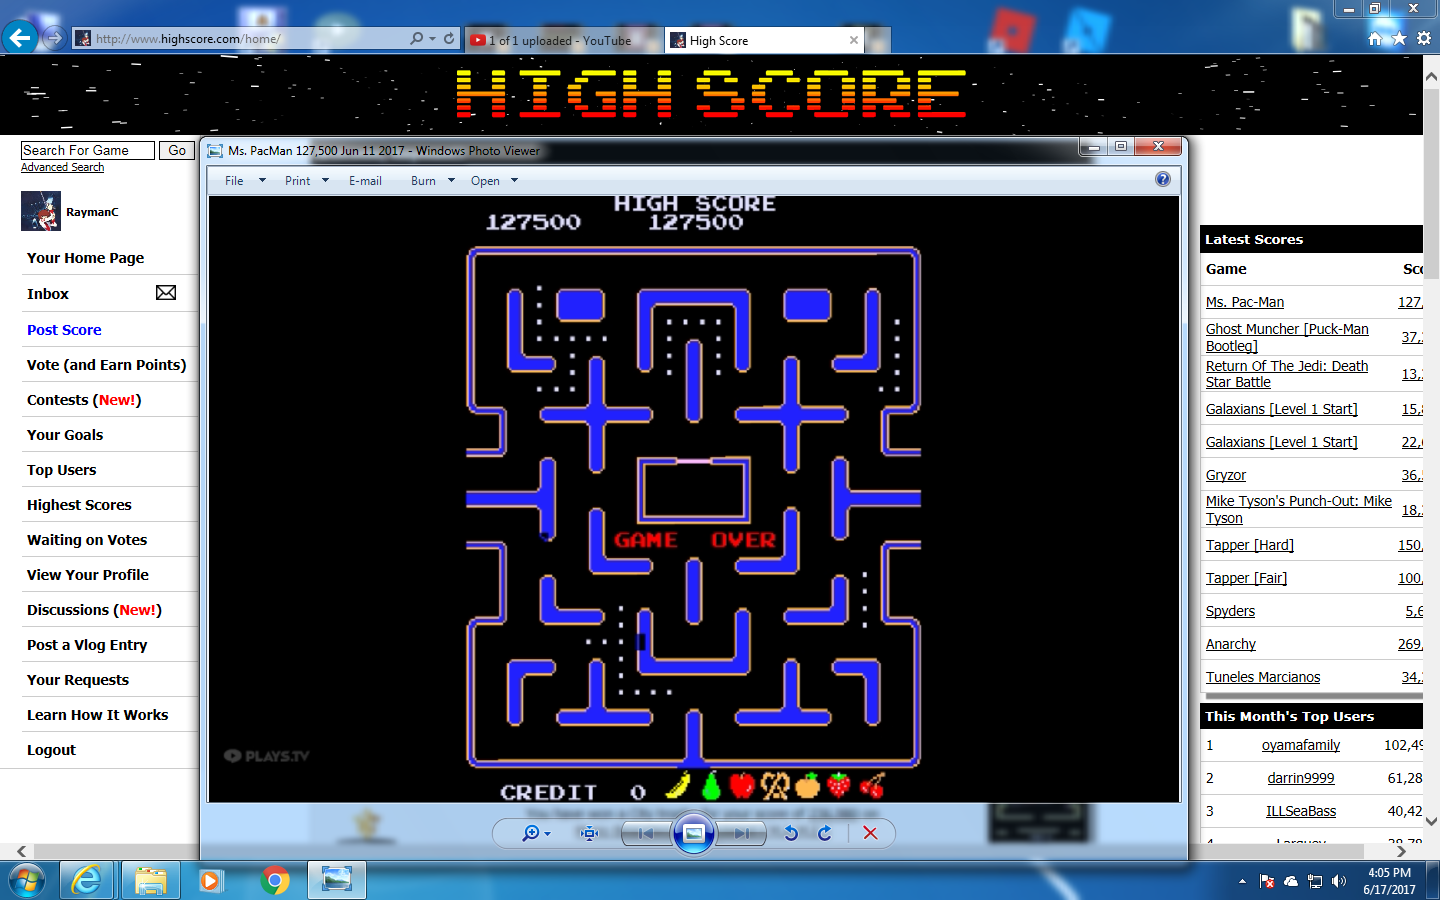 Ms. Pac-Man 127,500 points